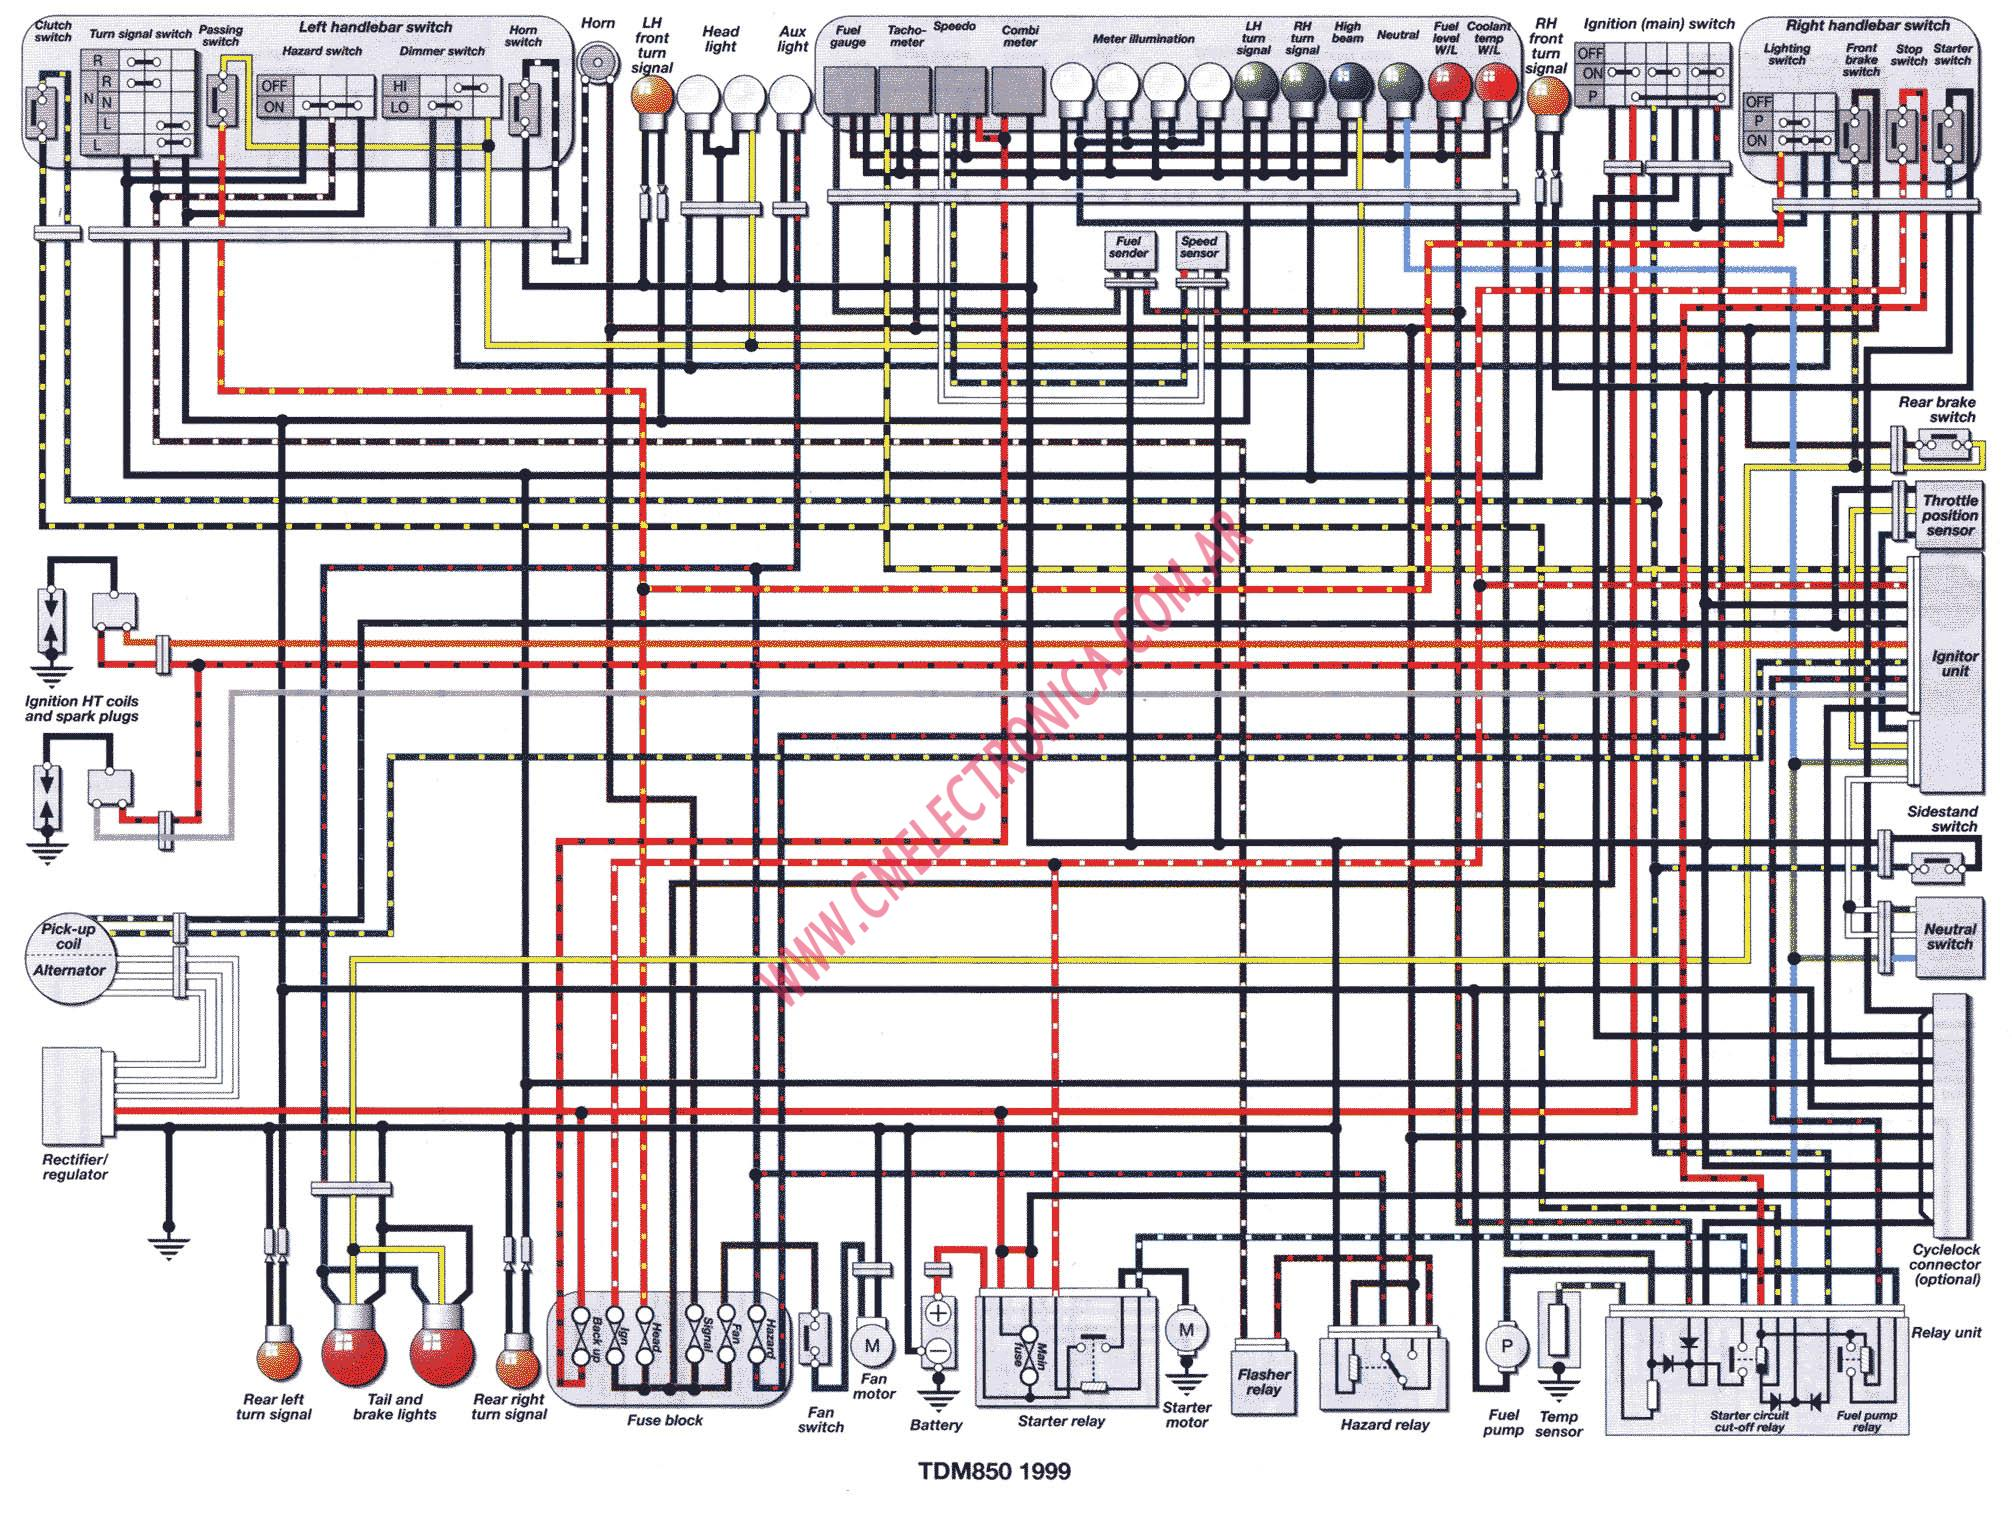 yamaha tdm850_99 yamaha rhino ignition wiring diagram the wiring diagram yamaha yfz 450 wiring diagram at fashall.co